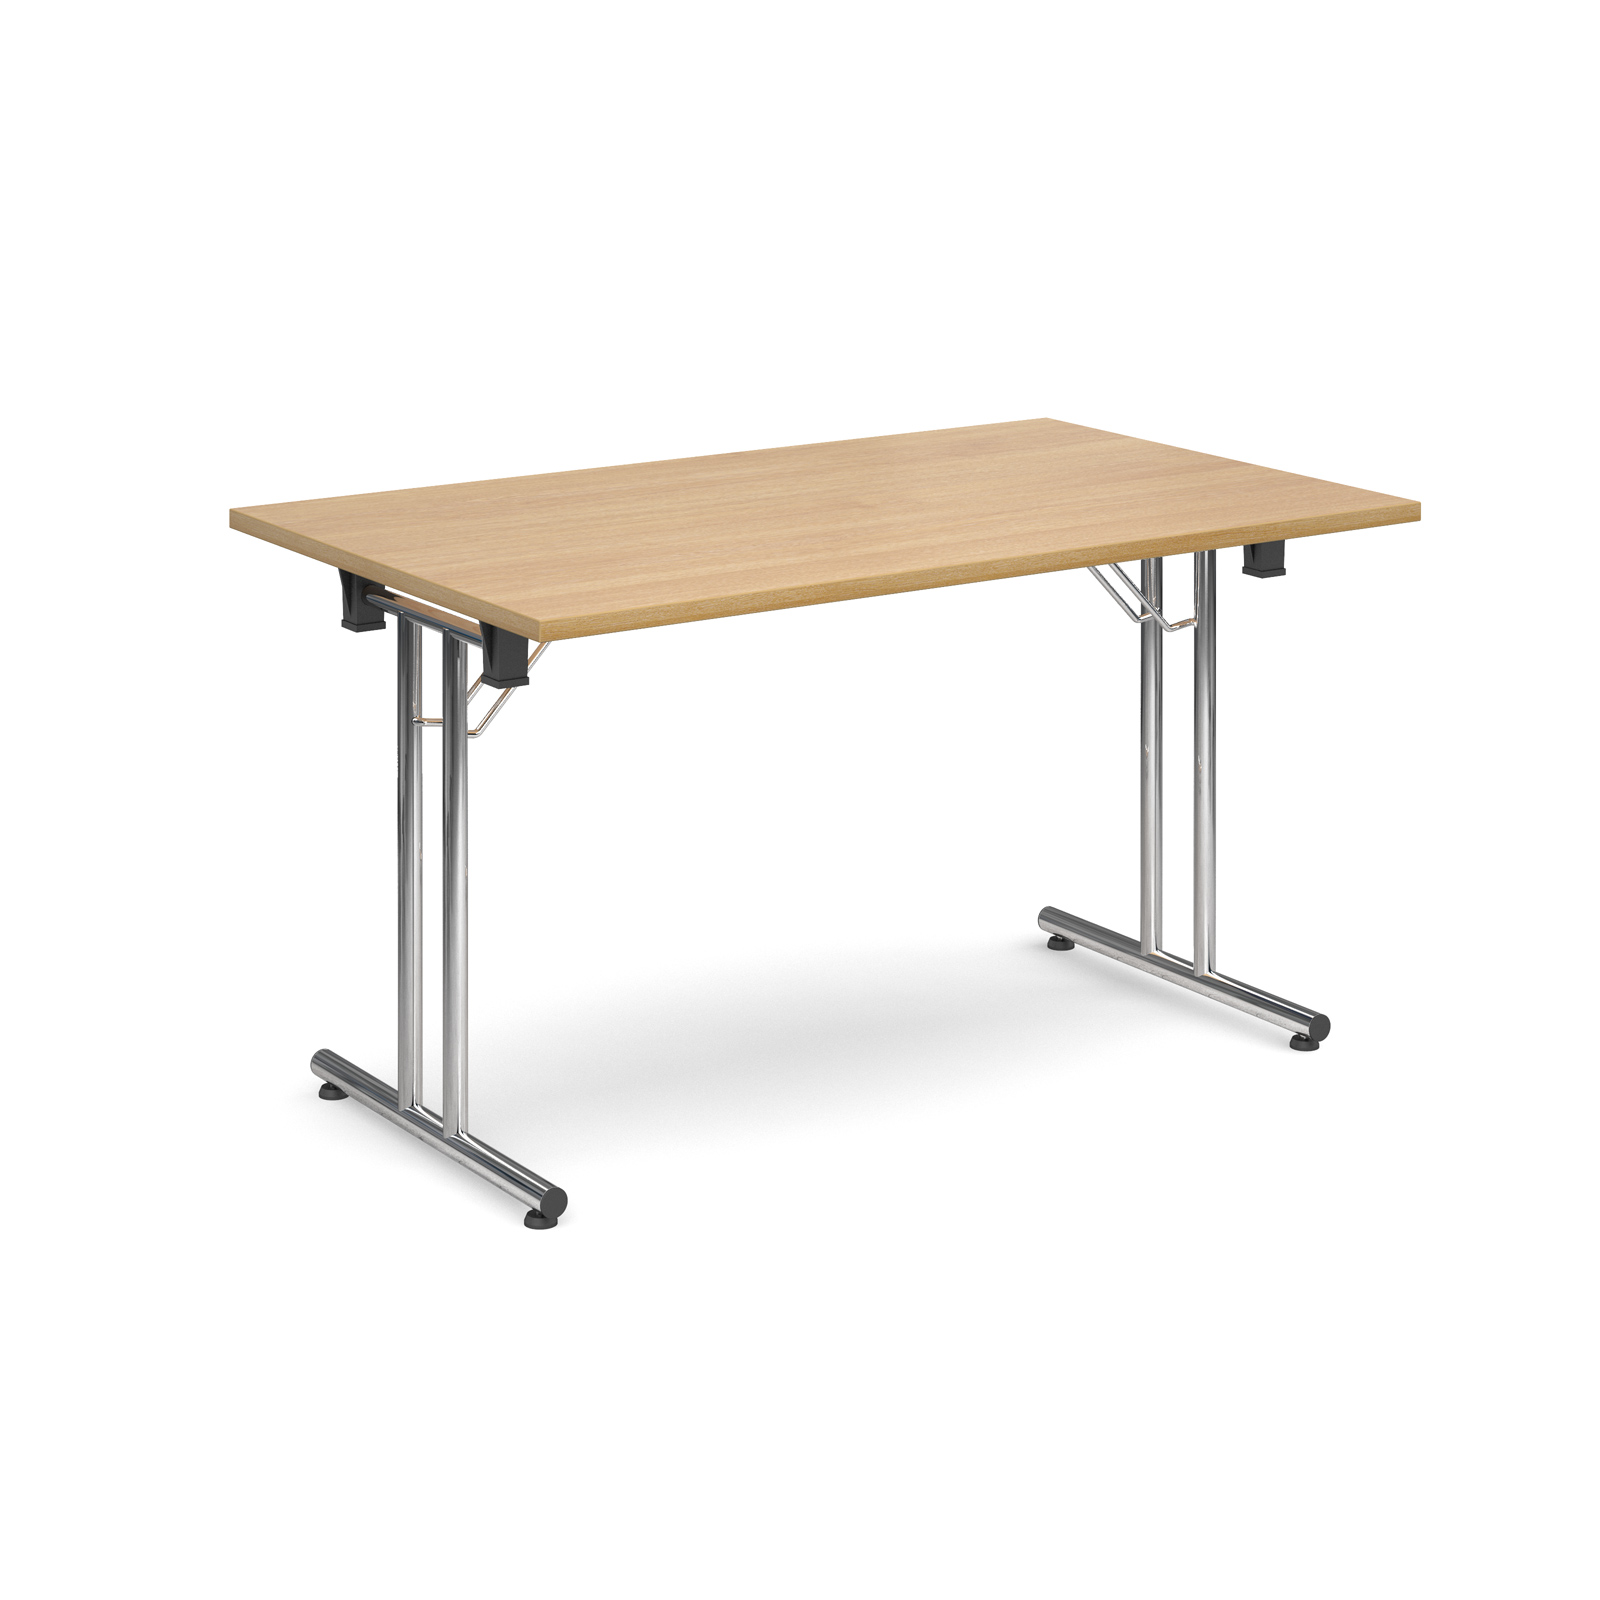 Rectangular deluxe folding leg table 1300mm x 800mm - oak